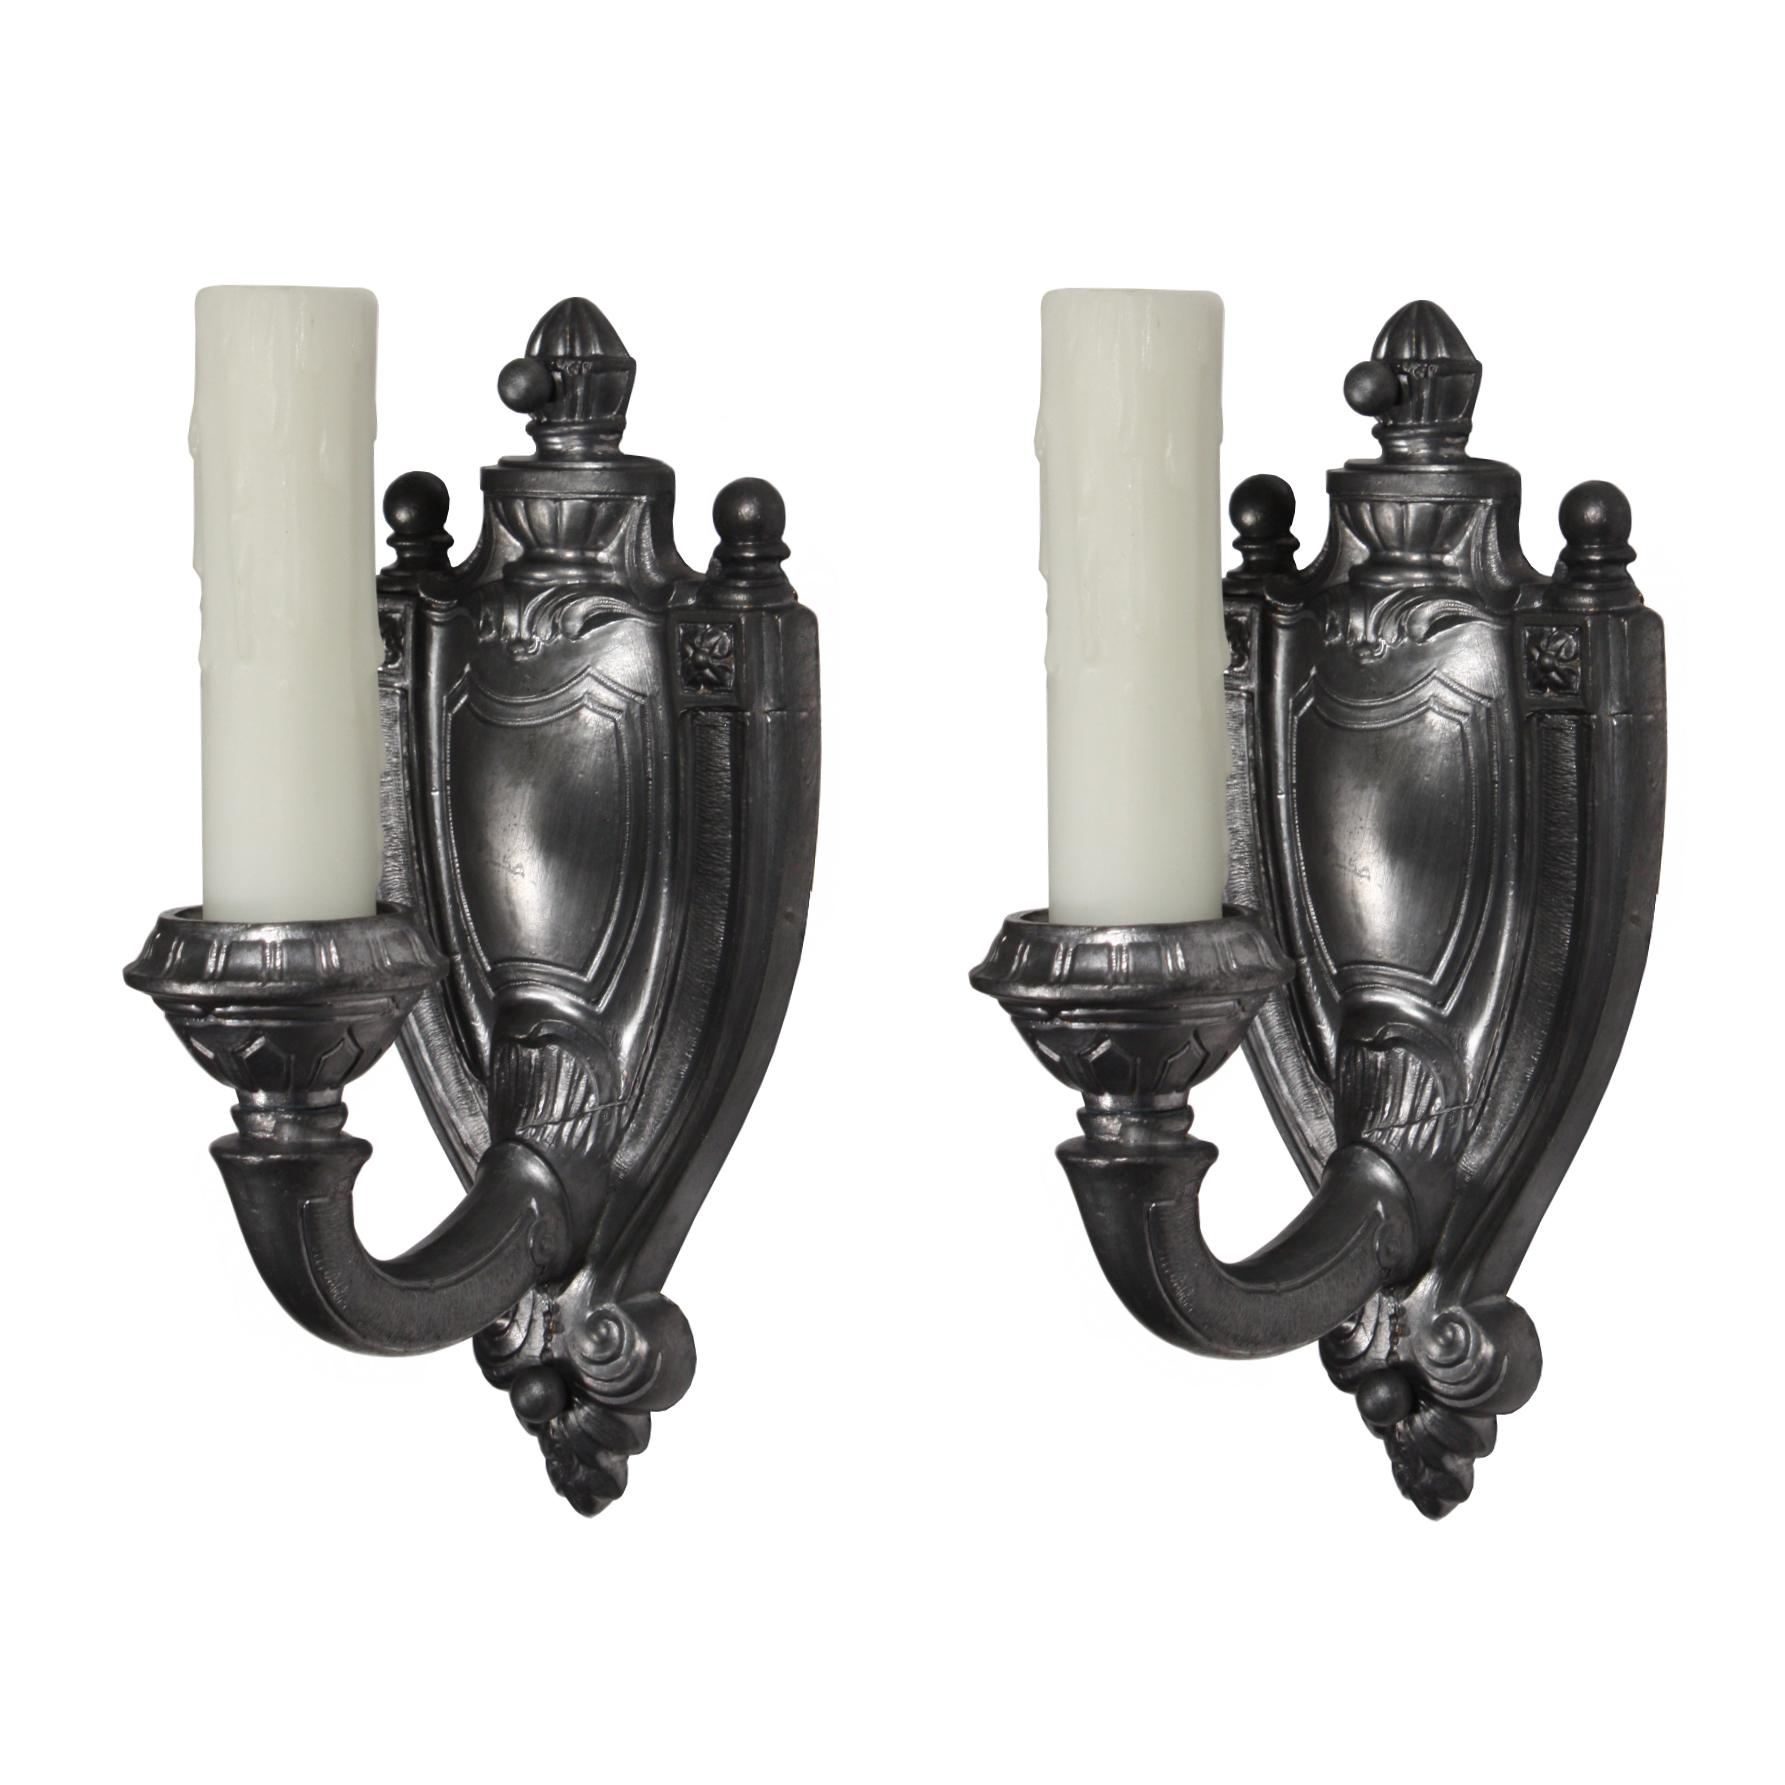 Elegant Pair of Antique Single-Arm Adam Style Sconces in Pewter